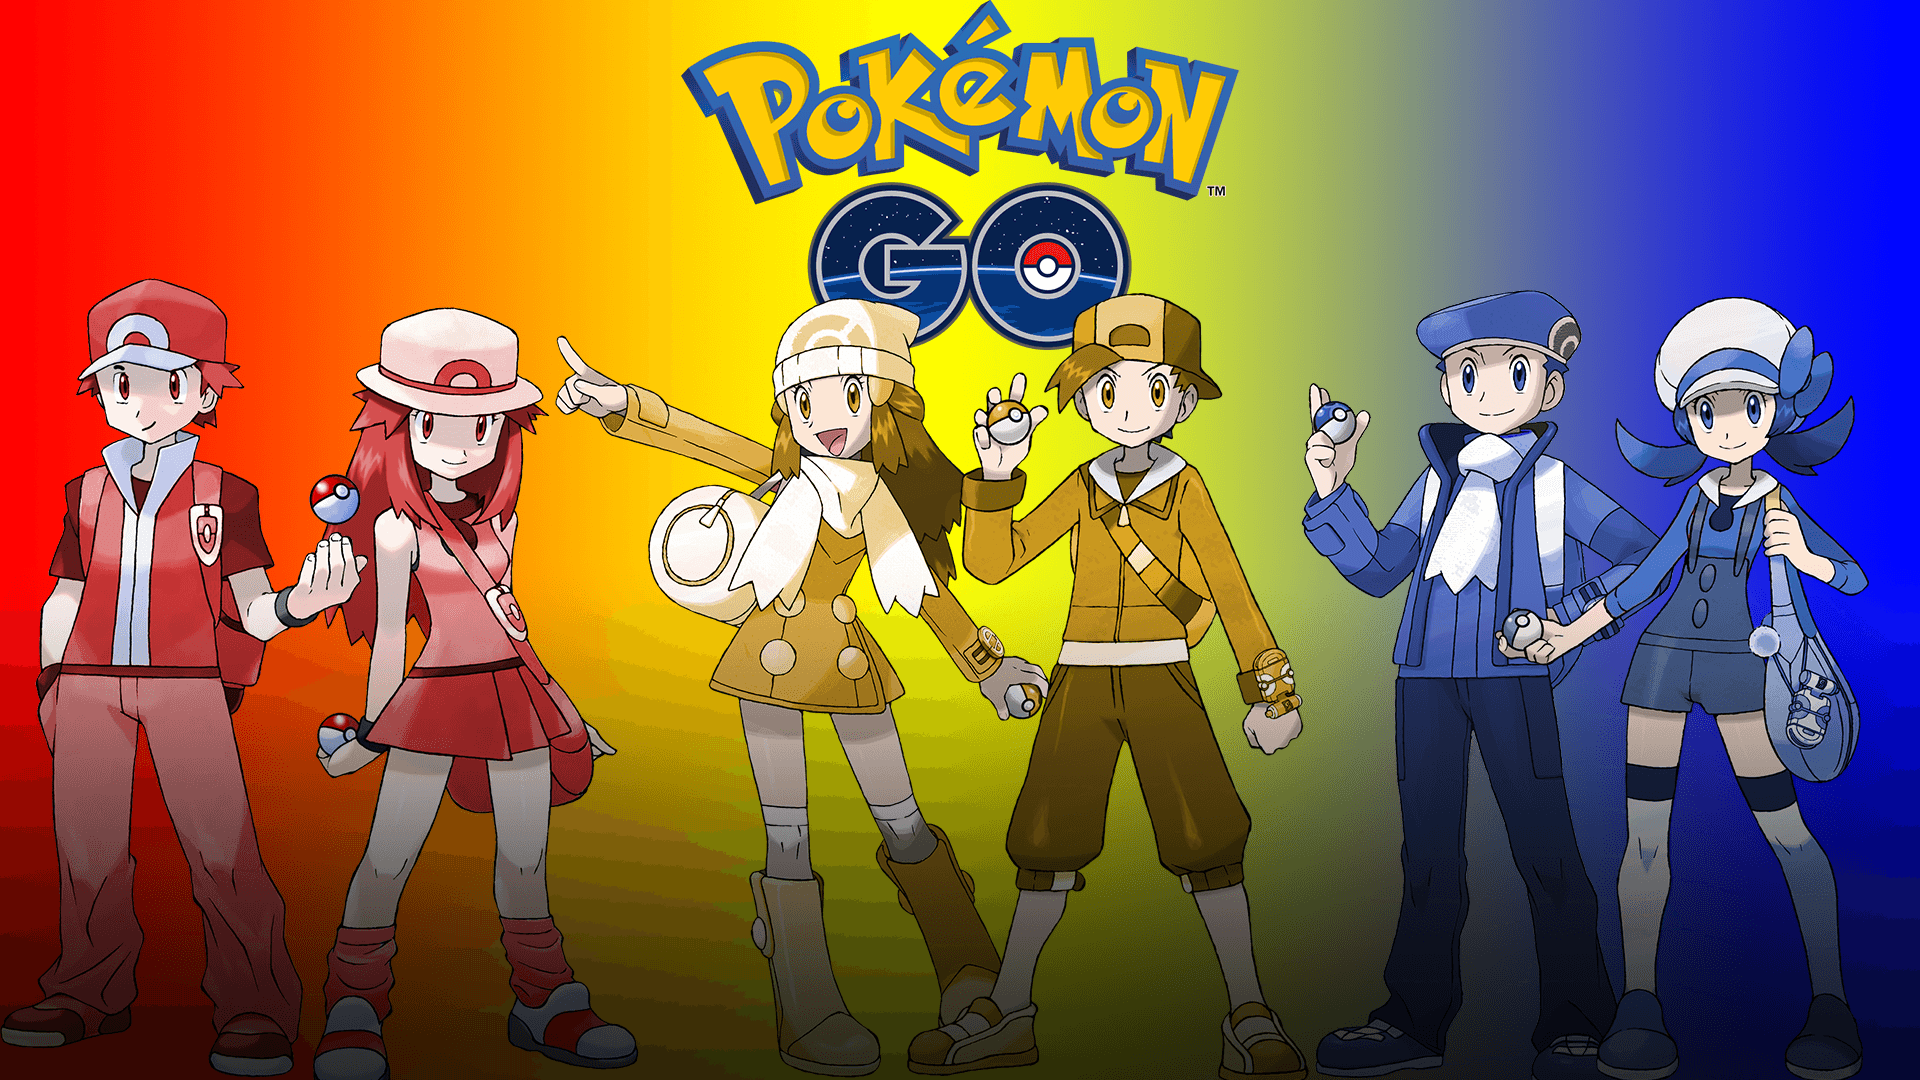 I made a desktop wallpapers for pokemon go! So here's a little